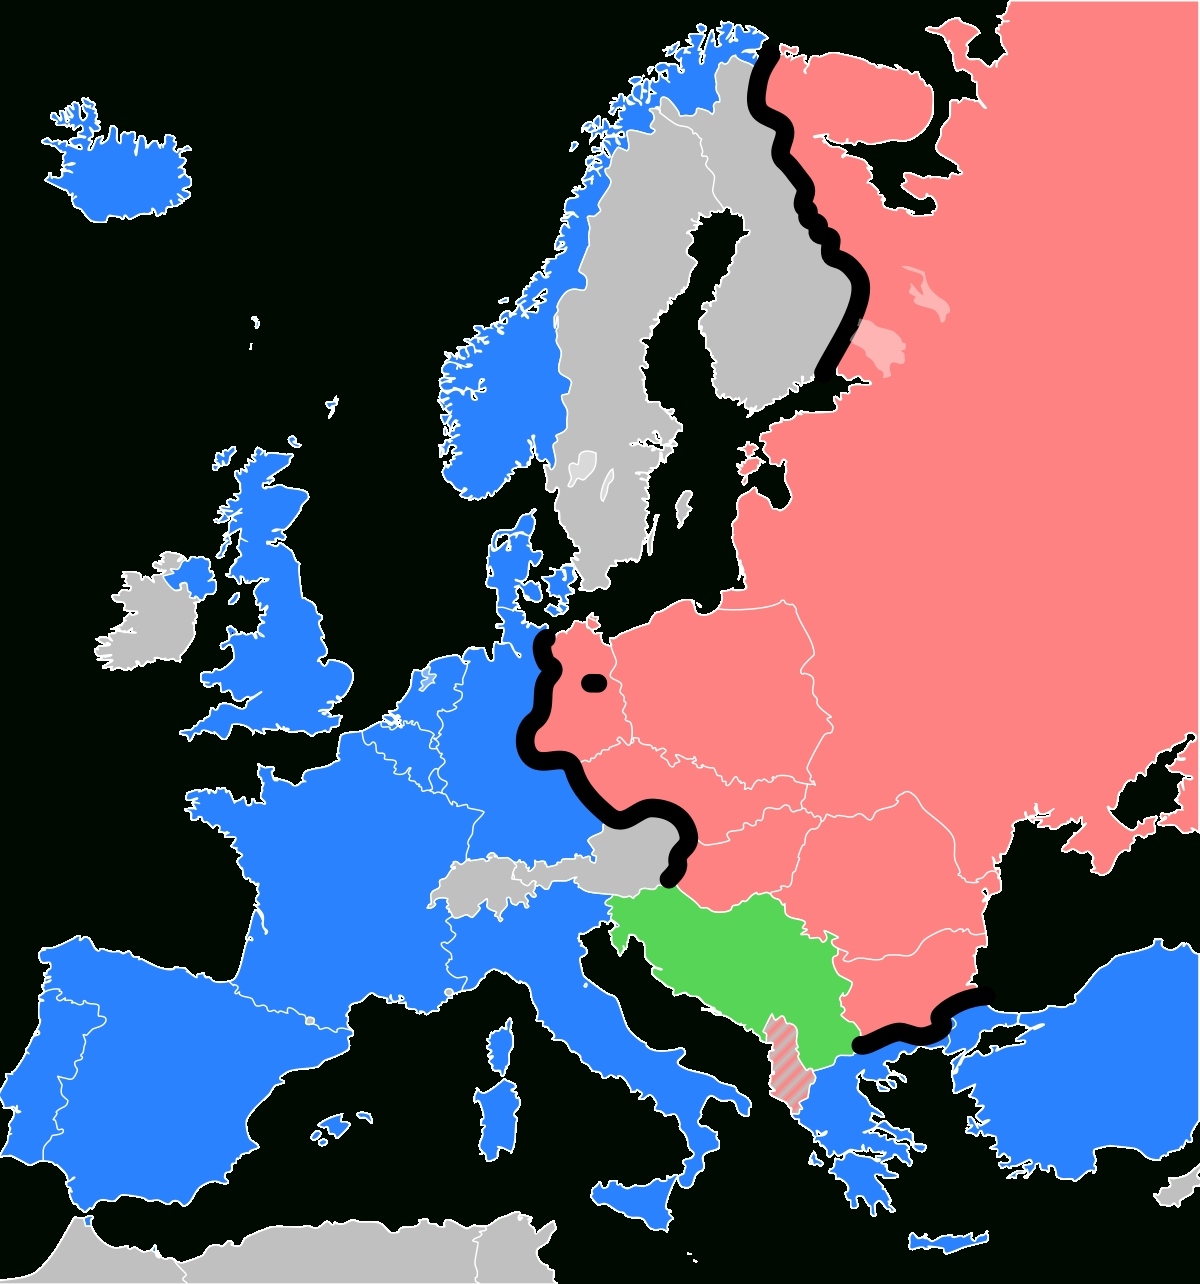 Iron Curtain - Wikipedia regarding Map Of East Germany During Cold War